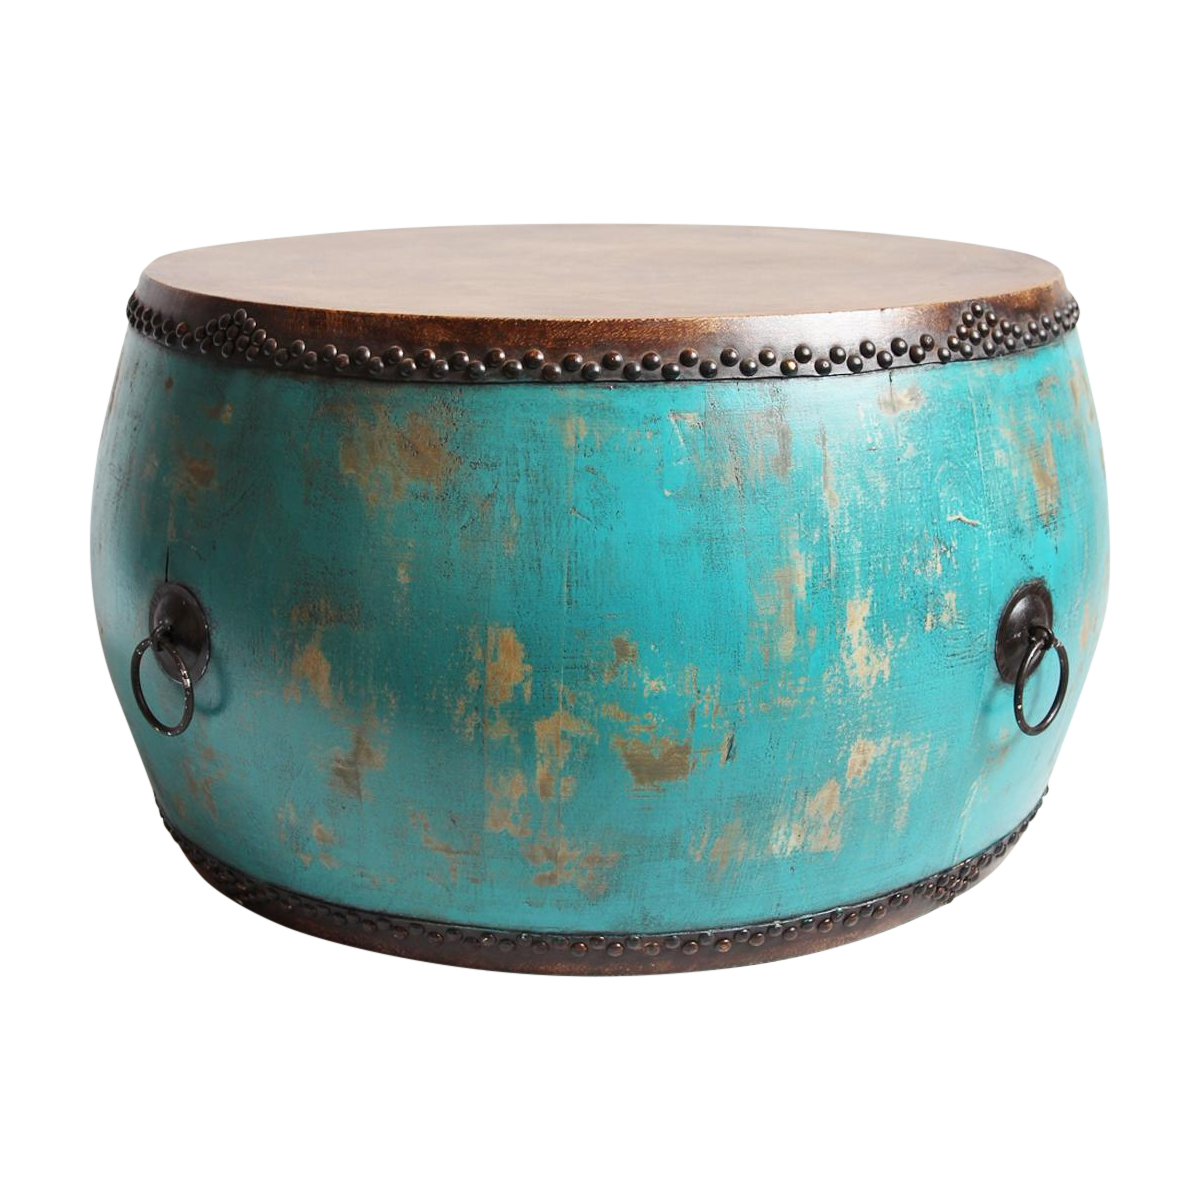 turquoise drum coffee table chairish tibetan accent basement furniture glass top side bath filler whitewash black living room tables dog tub modern reproductions threshold gold